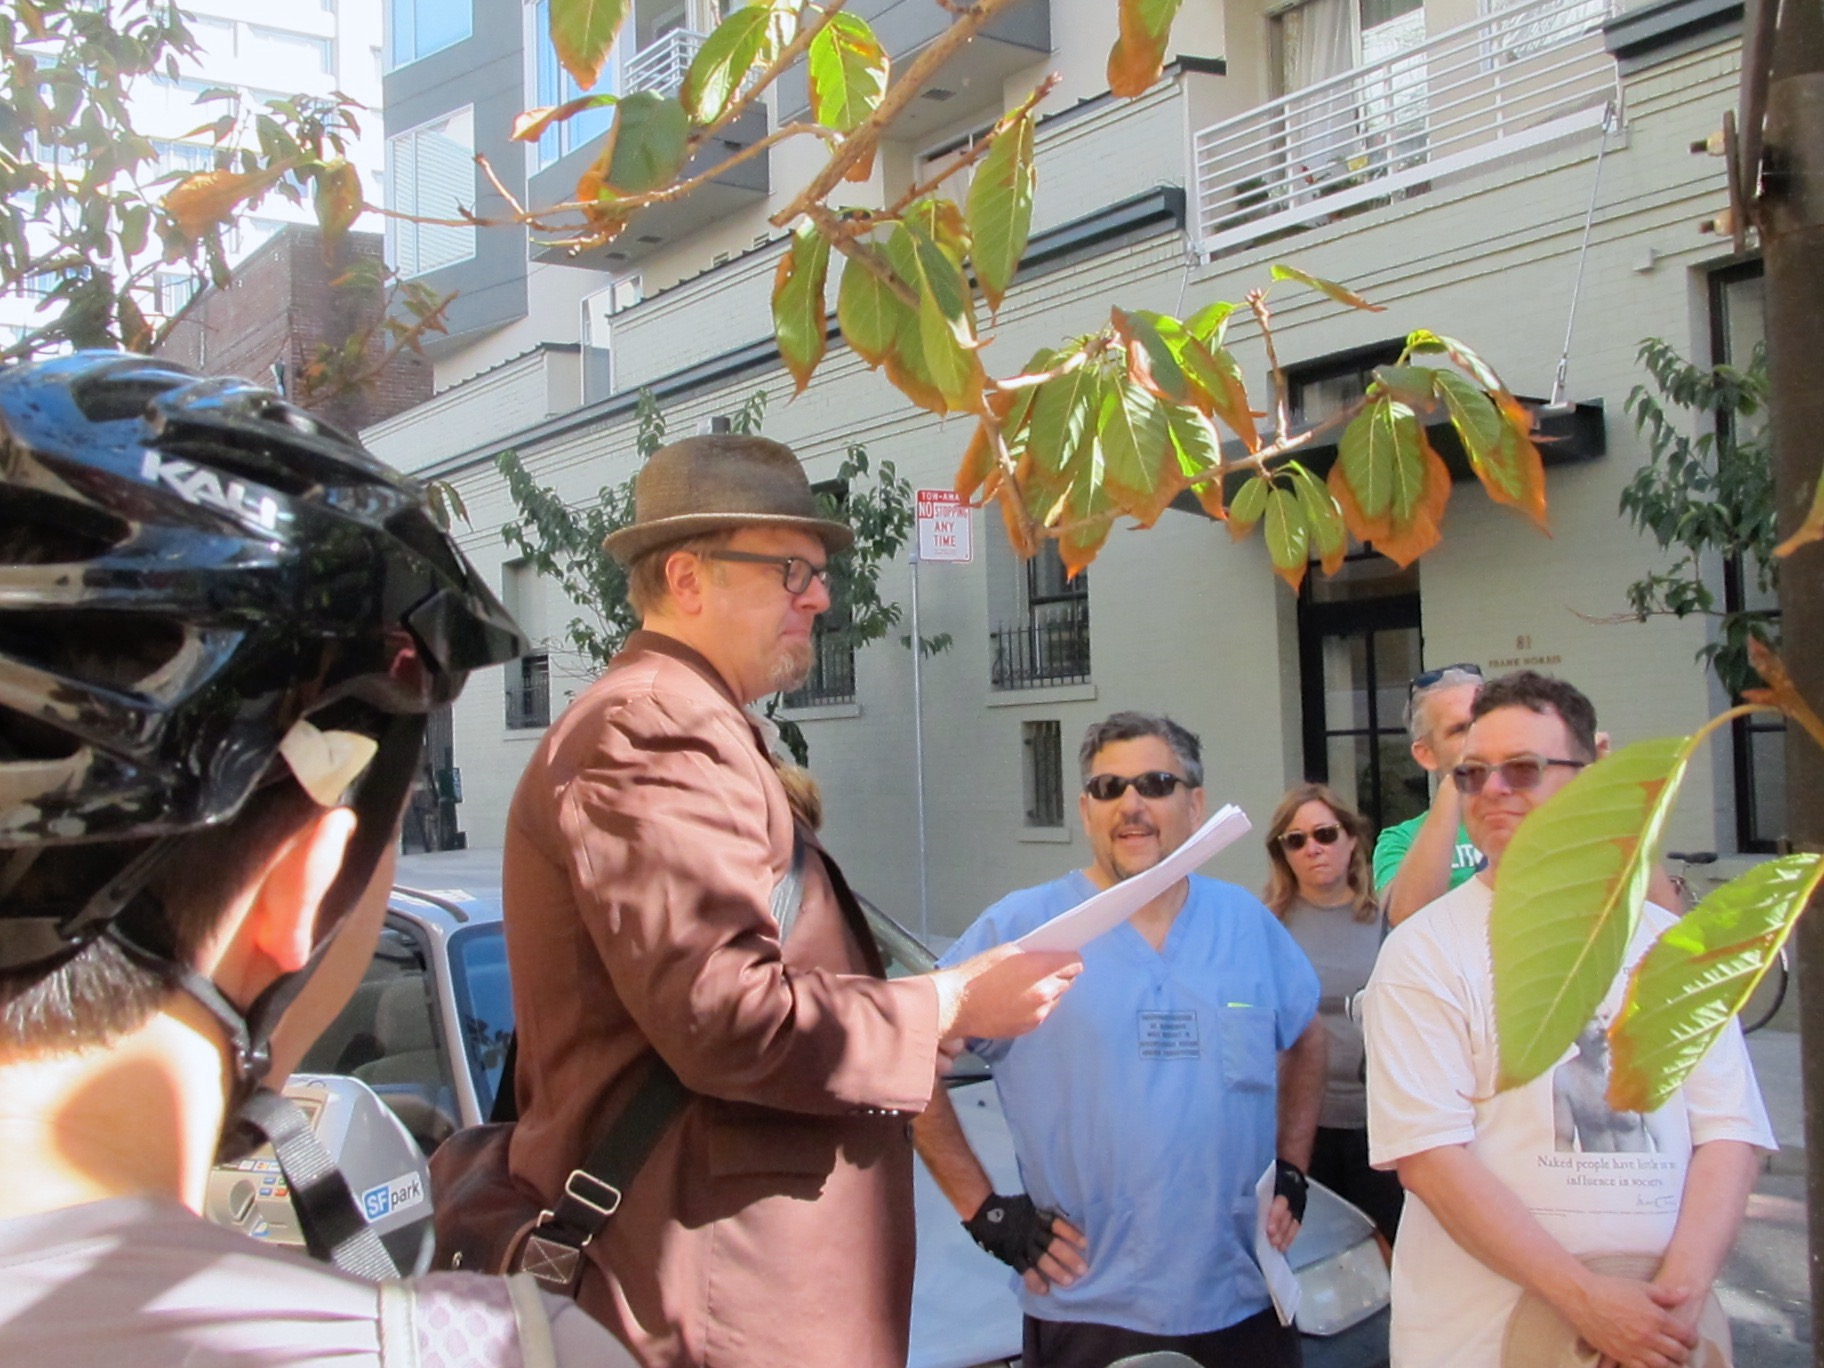 A reader, Jim Nelson, wearing a brown hat and suit jacket, reads to a group of bicycle riders on an urban side street in San Francisco.